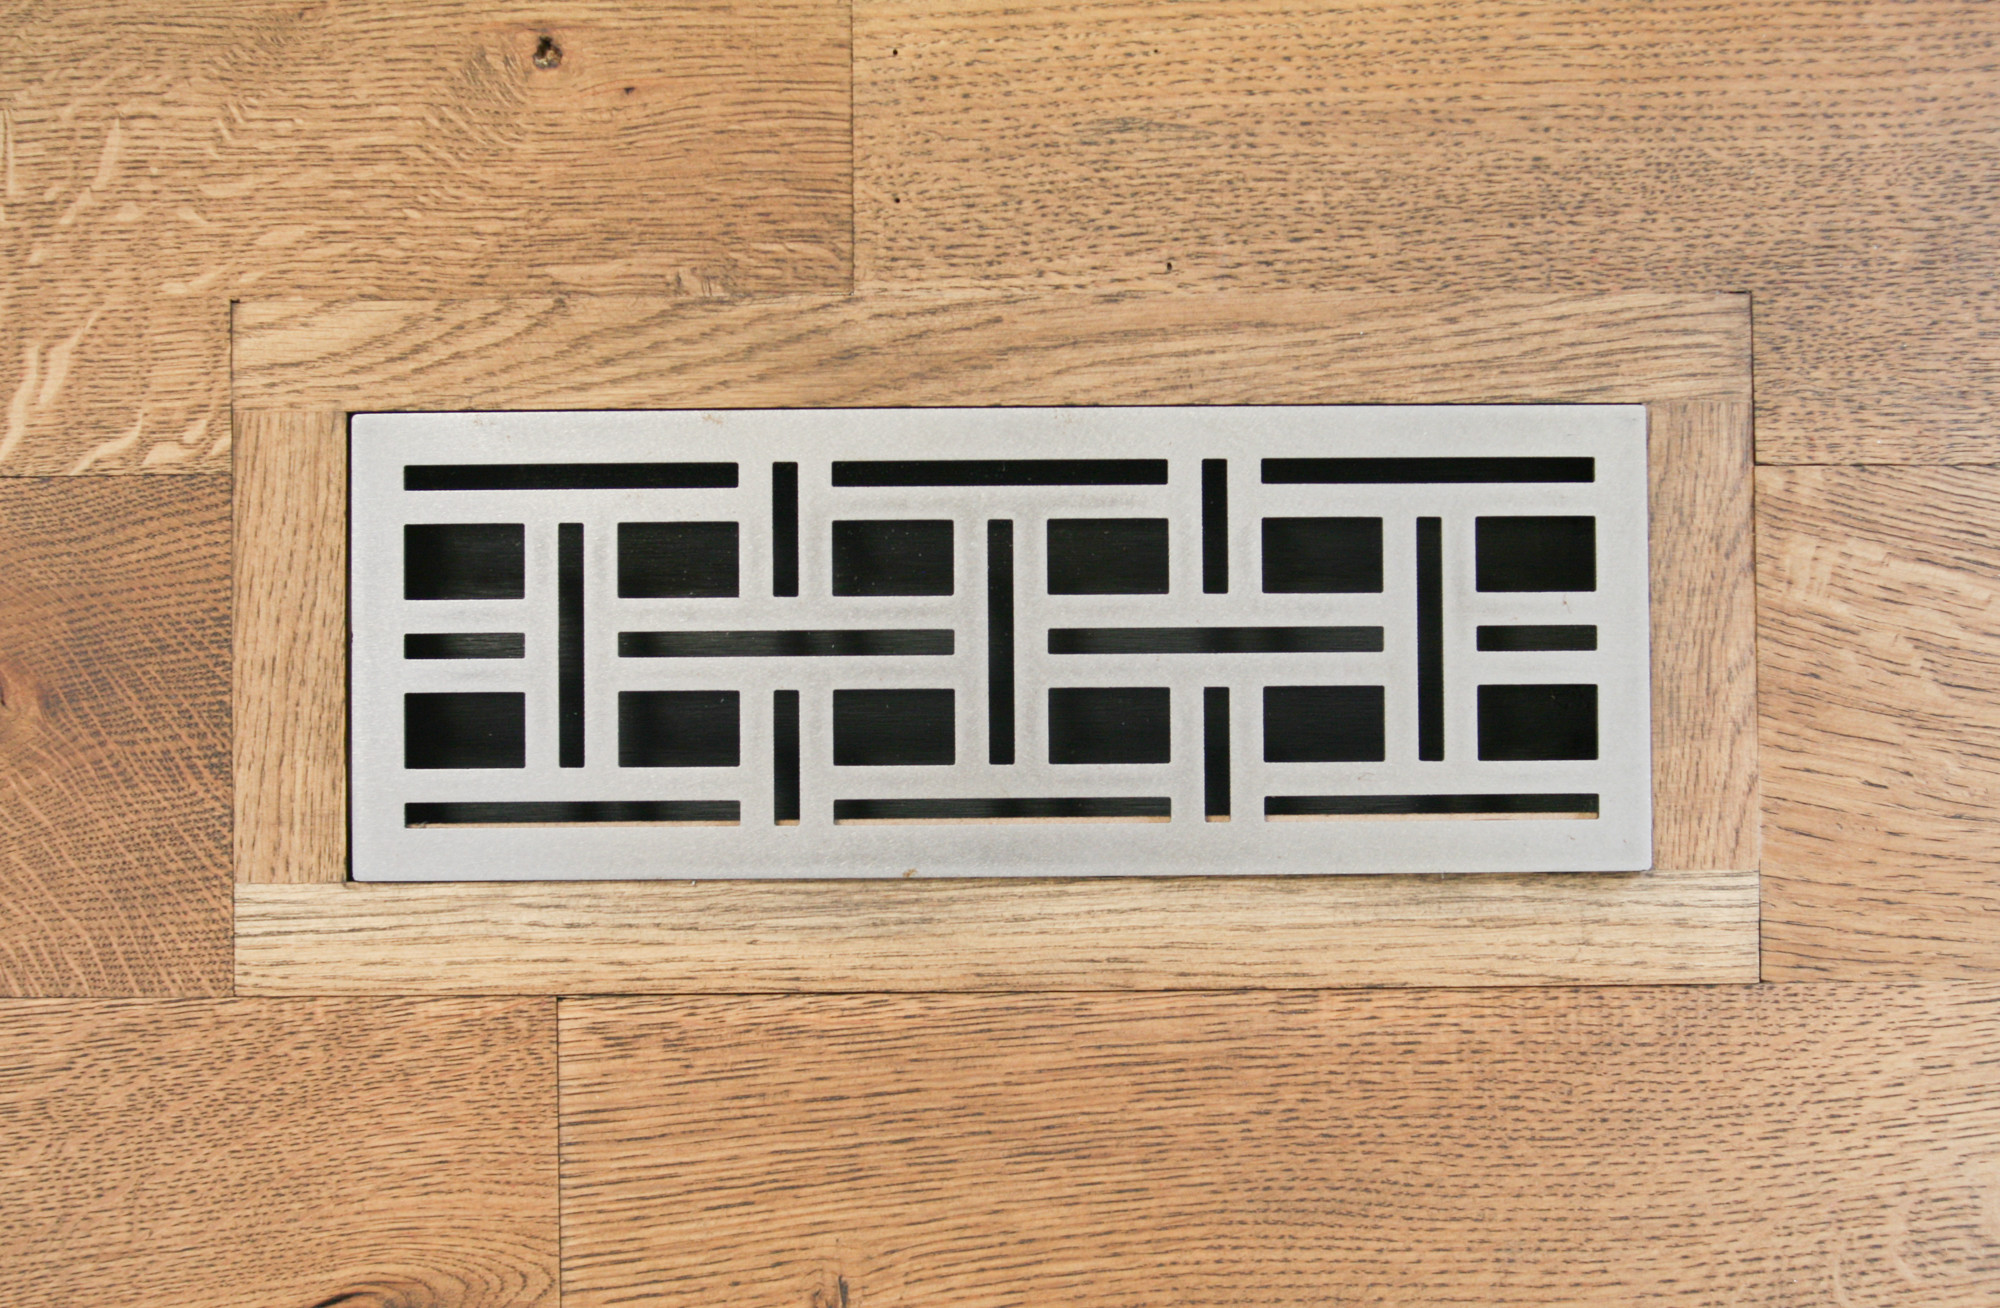 #946737 Eternal Mission Vent Register Flush Mount Carbon Steel  Best 2923 Floor Register Vents photos with 2000x1308 px on helpvideos.info - Air Conditioners, Air Coolers and more